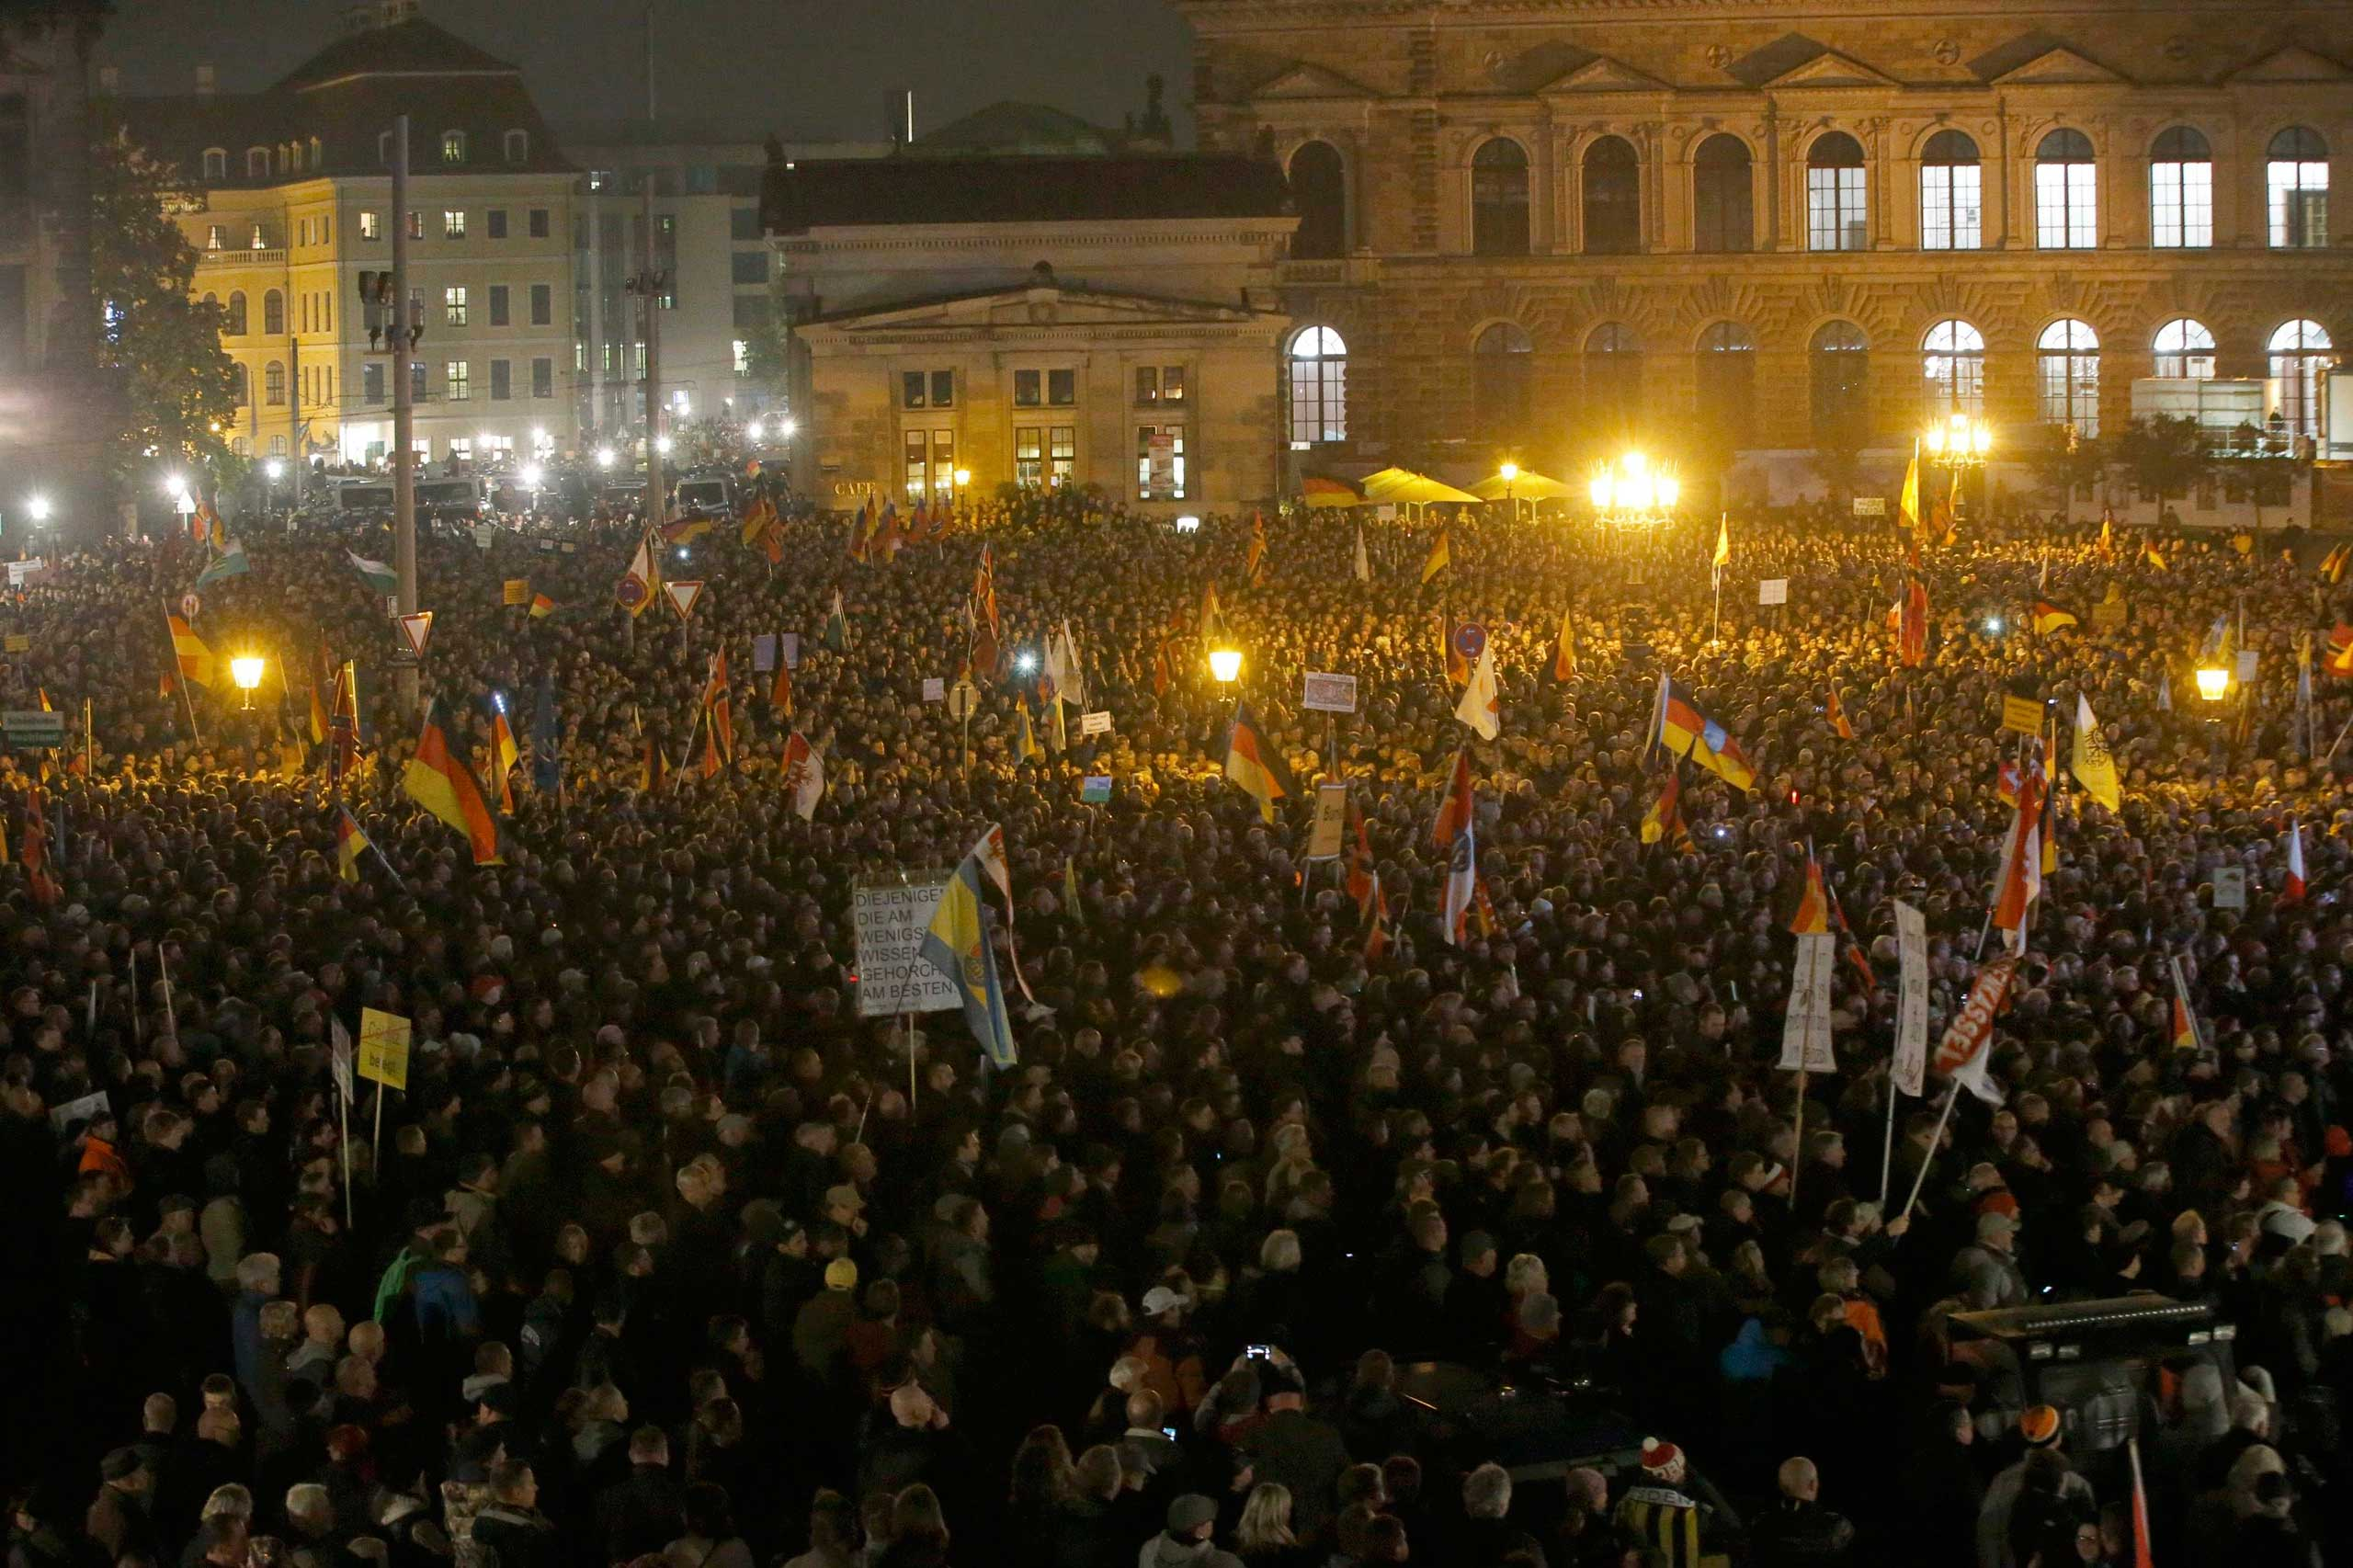 People gather for an anti-immigration demonstration organised by rightwing movement Patriotic Europeans Against the Islamisation of the West (PEGIDA) in Dresden, Germany, on Oct. 19, 2015.